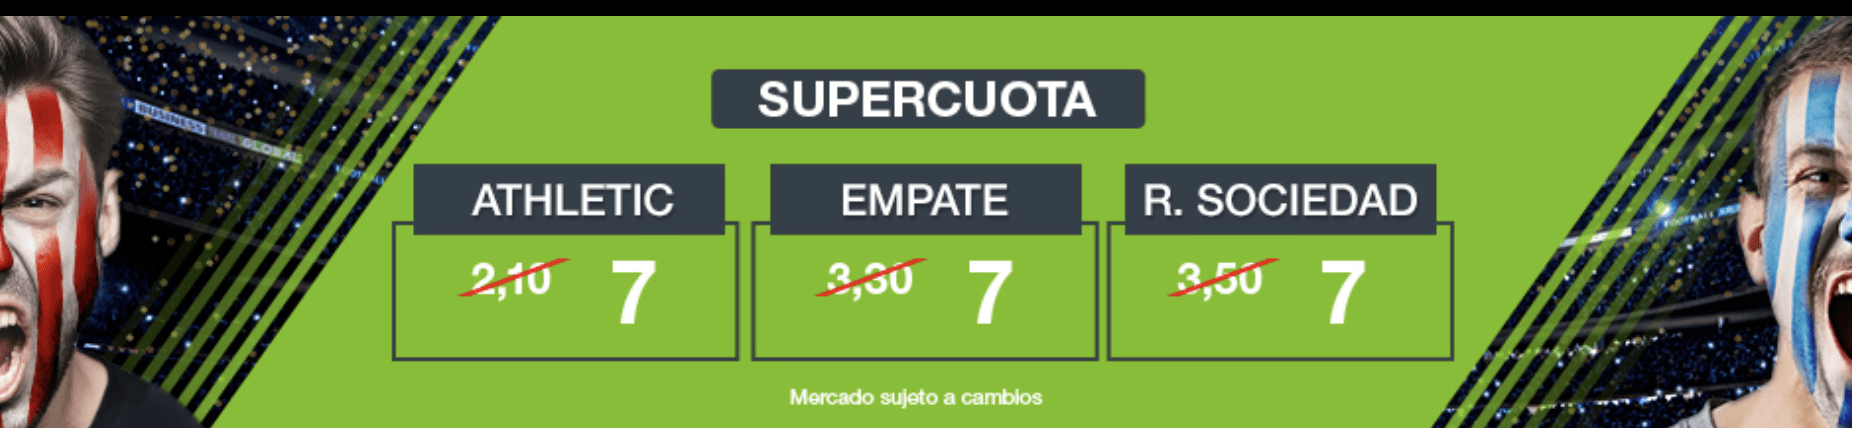 Supercuotas codere la liga Athletic - Real Sociedad